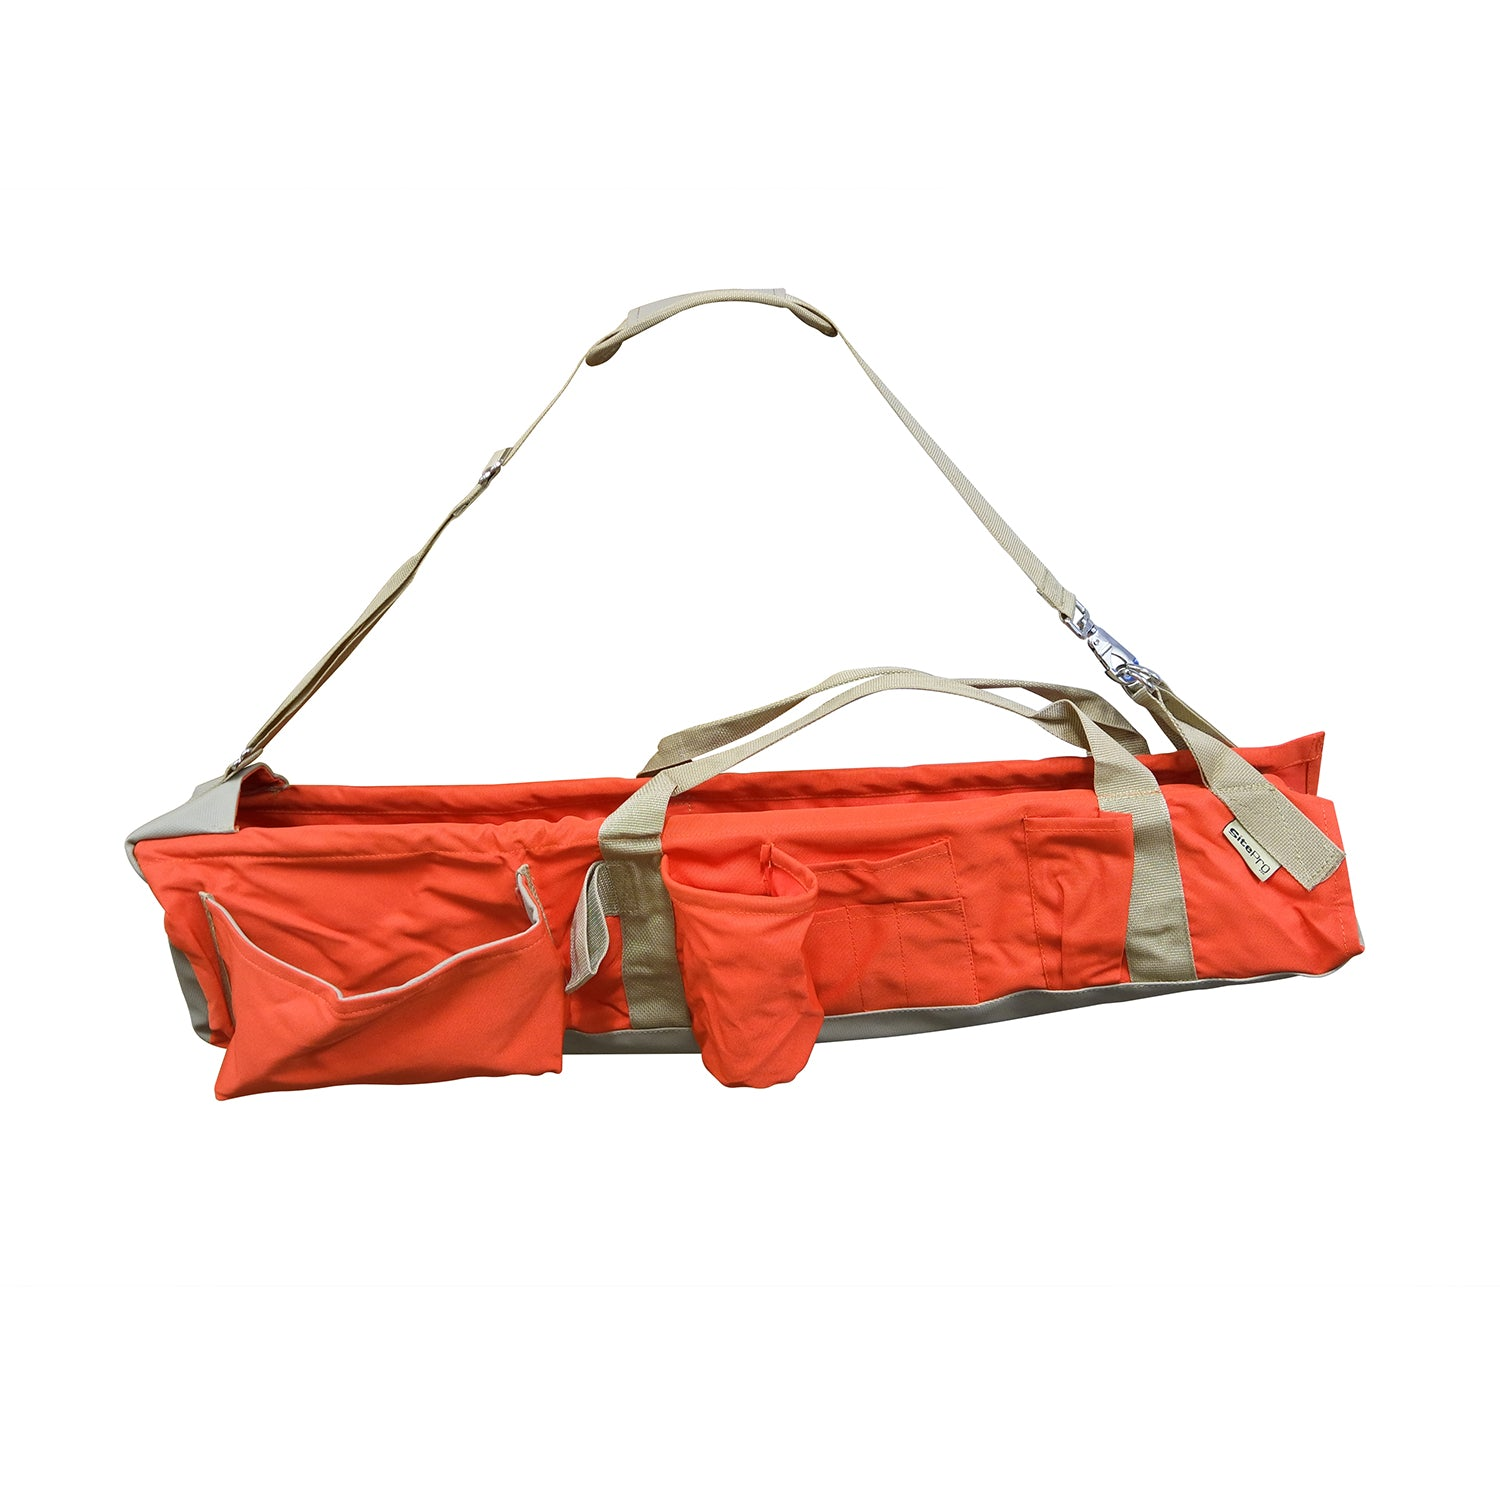 SitePro 38 Inch Heavy Duty Lath Bag with Handles -Surveying Bags- eGPS Solutions Inc.